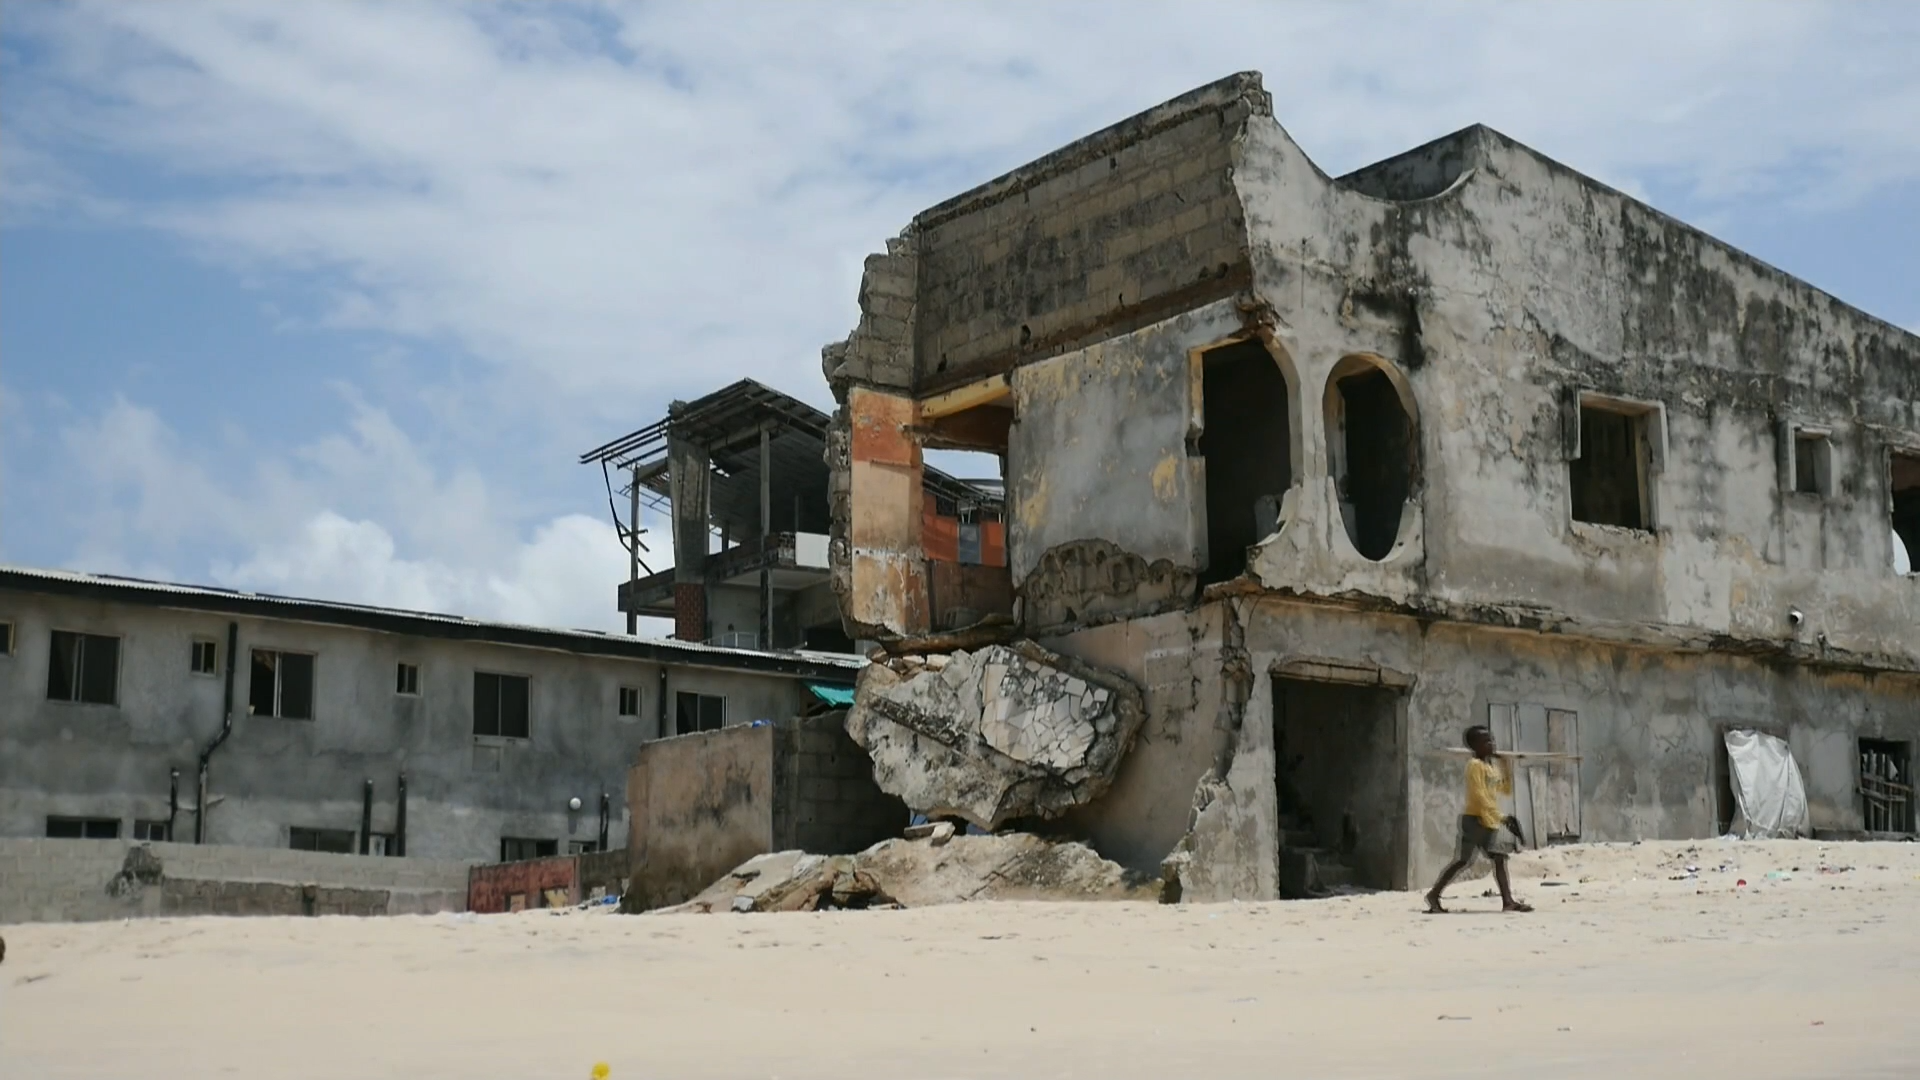 Coastal erosion in Nigeria leaves communities fearing their homes will disappear - channel 4